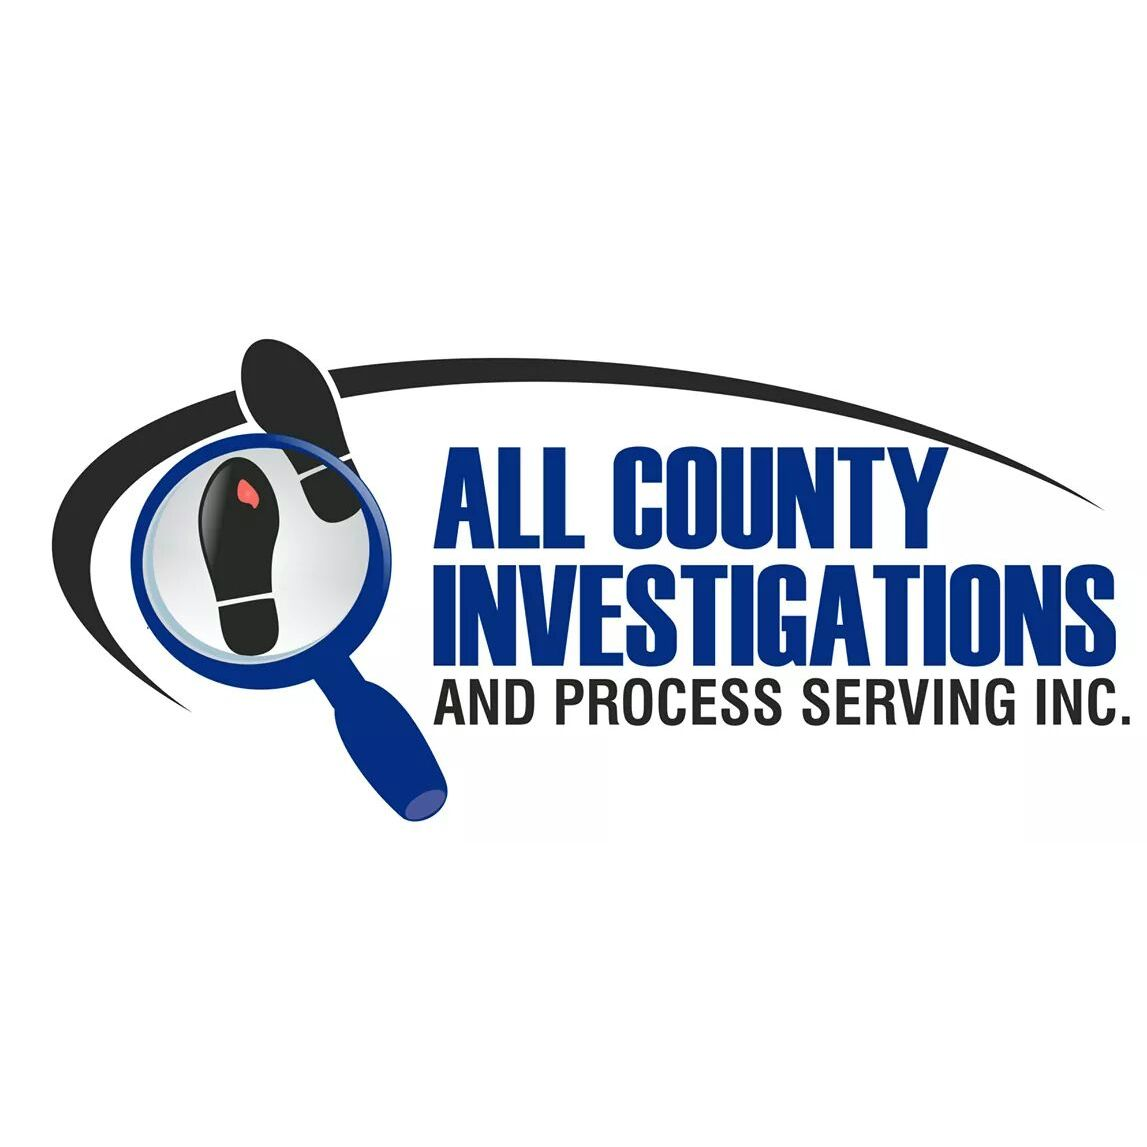 All County Investigations and Process Serving, Inc. image 1